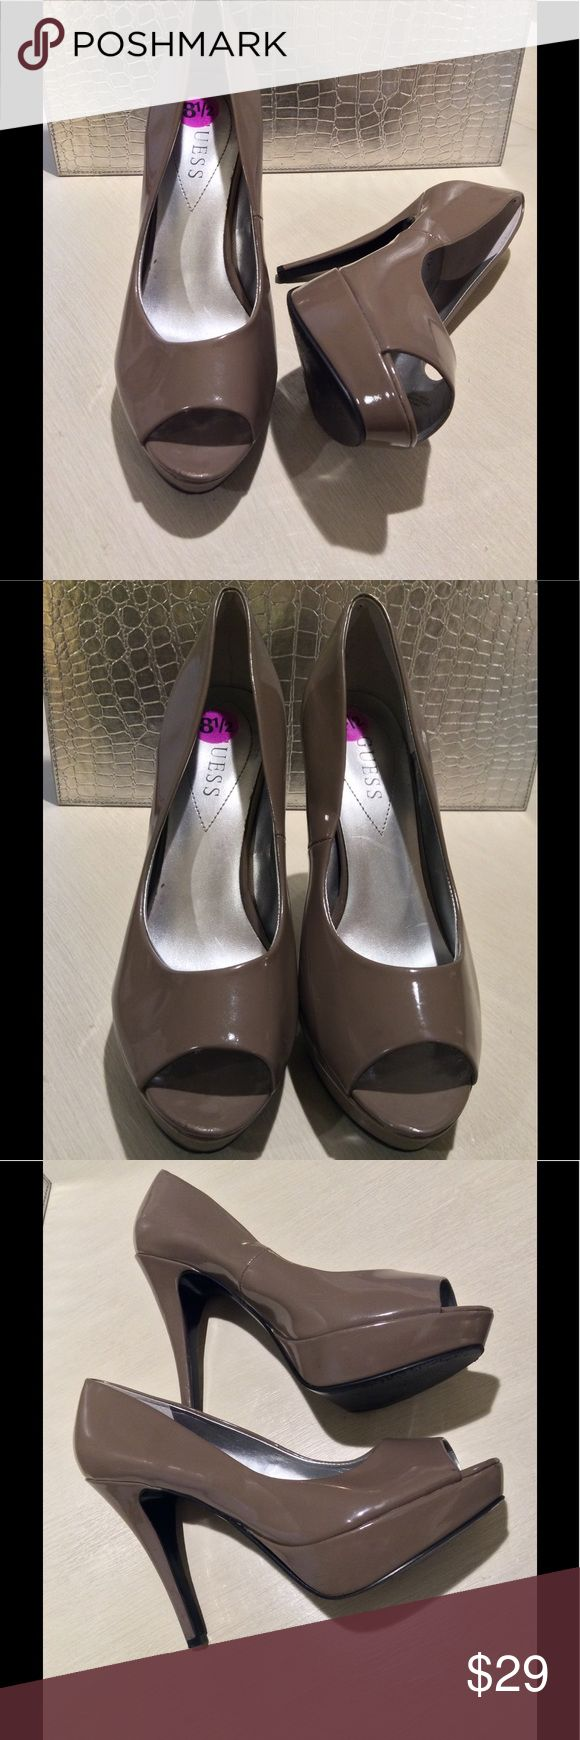 Guess Peeptoe Gray Heels Size 8.5, gray-mocha color, worn once, small scrapes in heels and scrape along left outer platform as shown otherwise excellent condition. 4-inch heel, 1-inch platform Guess Shoes Heels